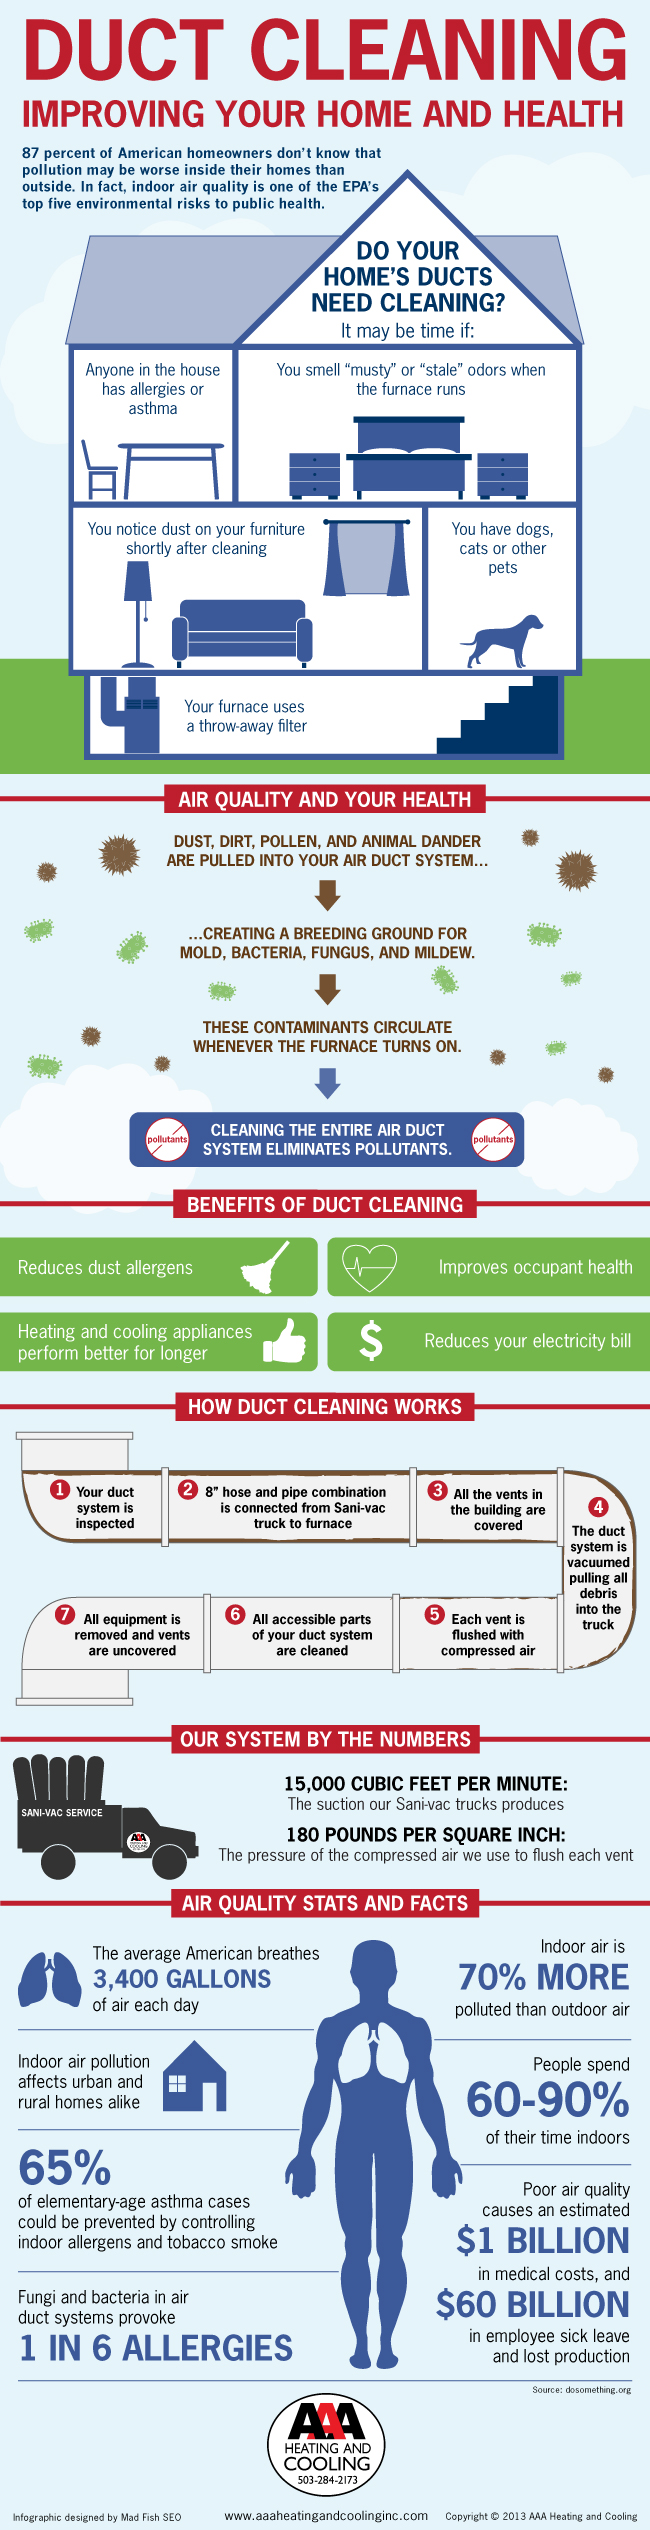 Duct Cleaning Can Improve Your Indoor Air Infographic